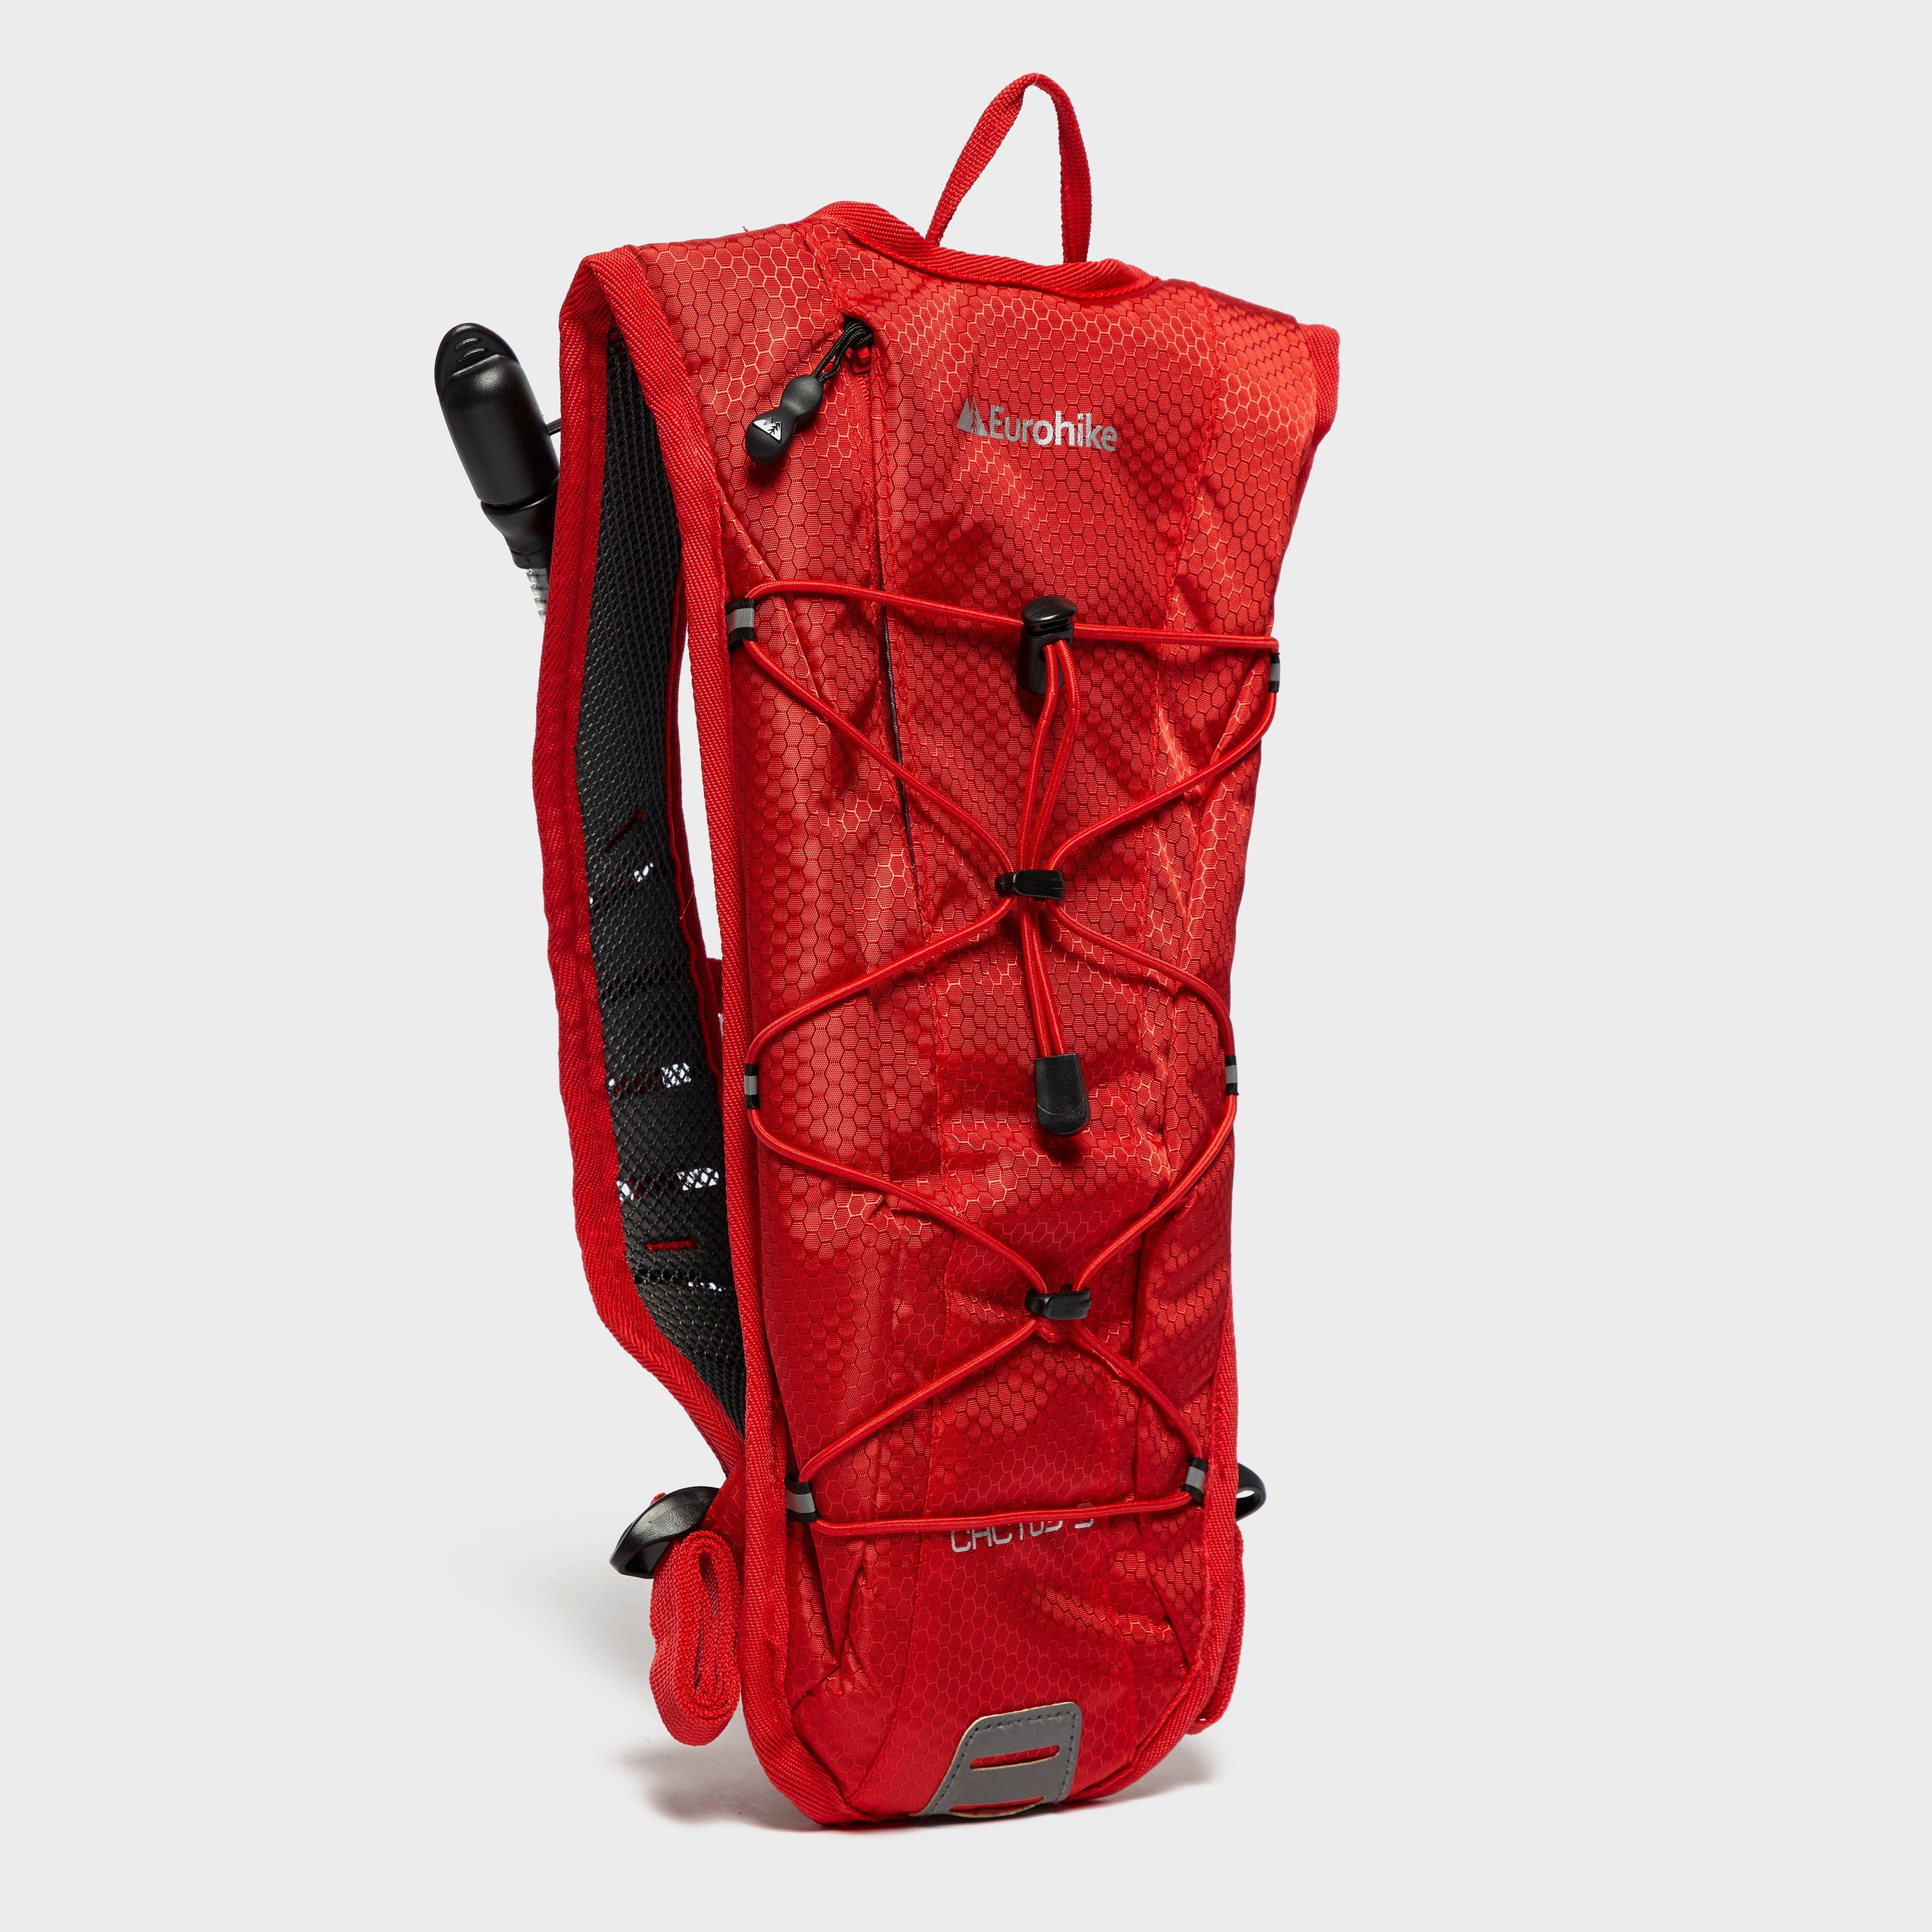 Eurohike Cactus 3L Hydration Pack, Red